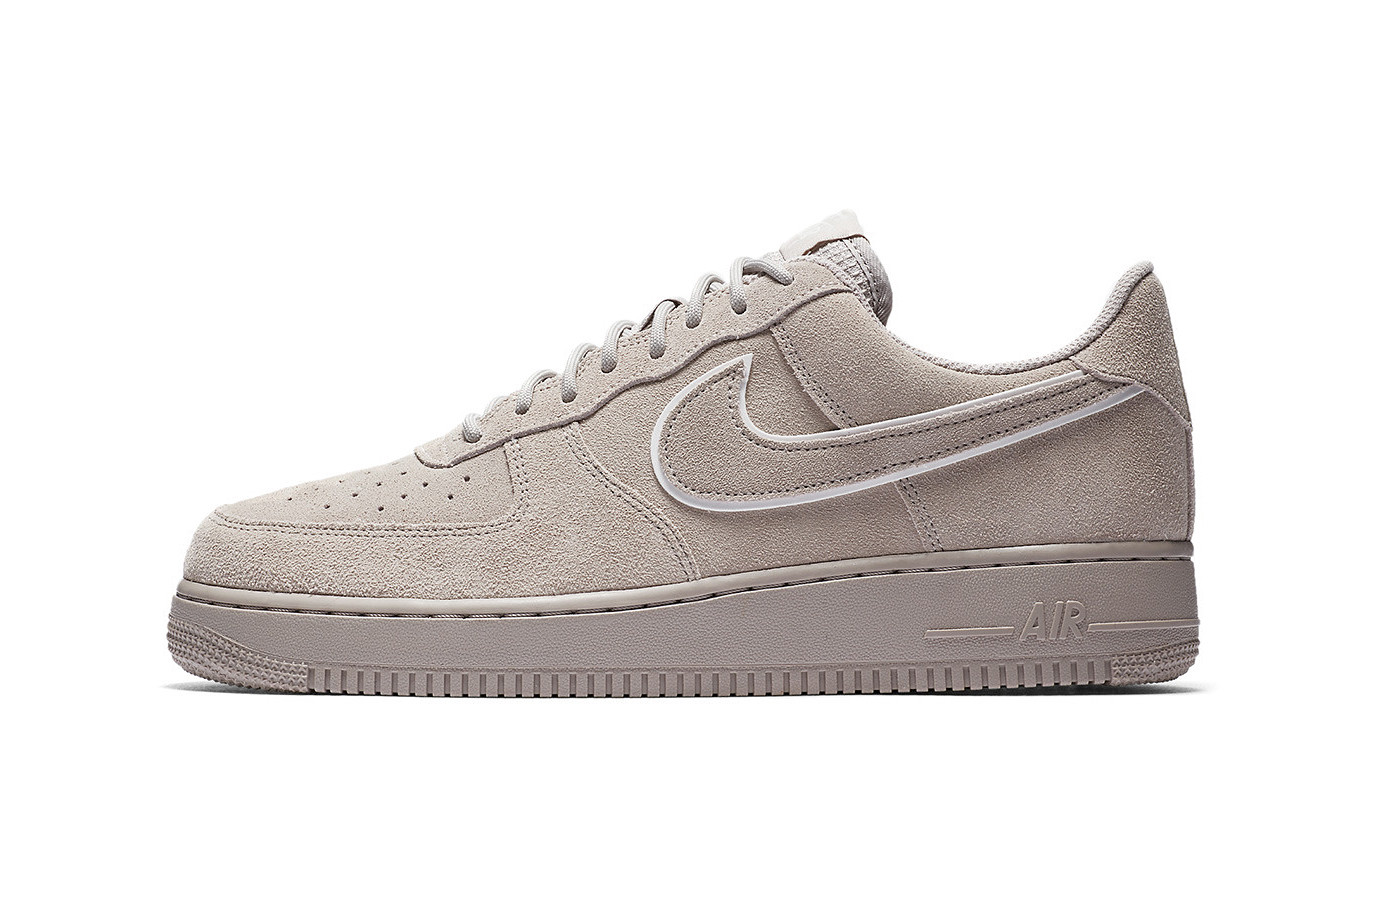 Nike Unveils Air Force 1 Low Suede Pack